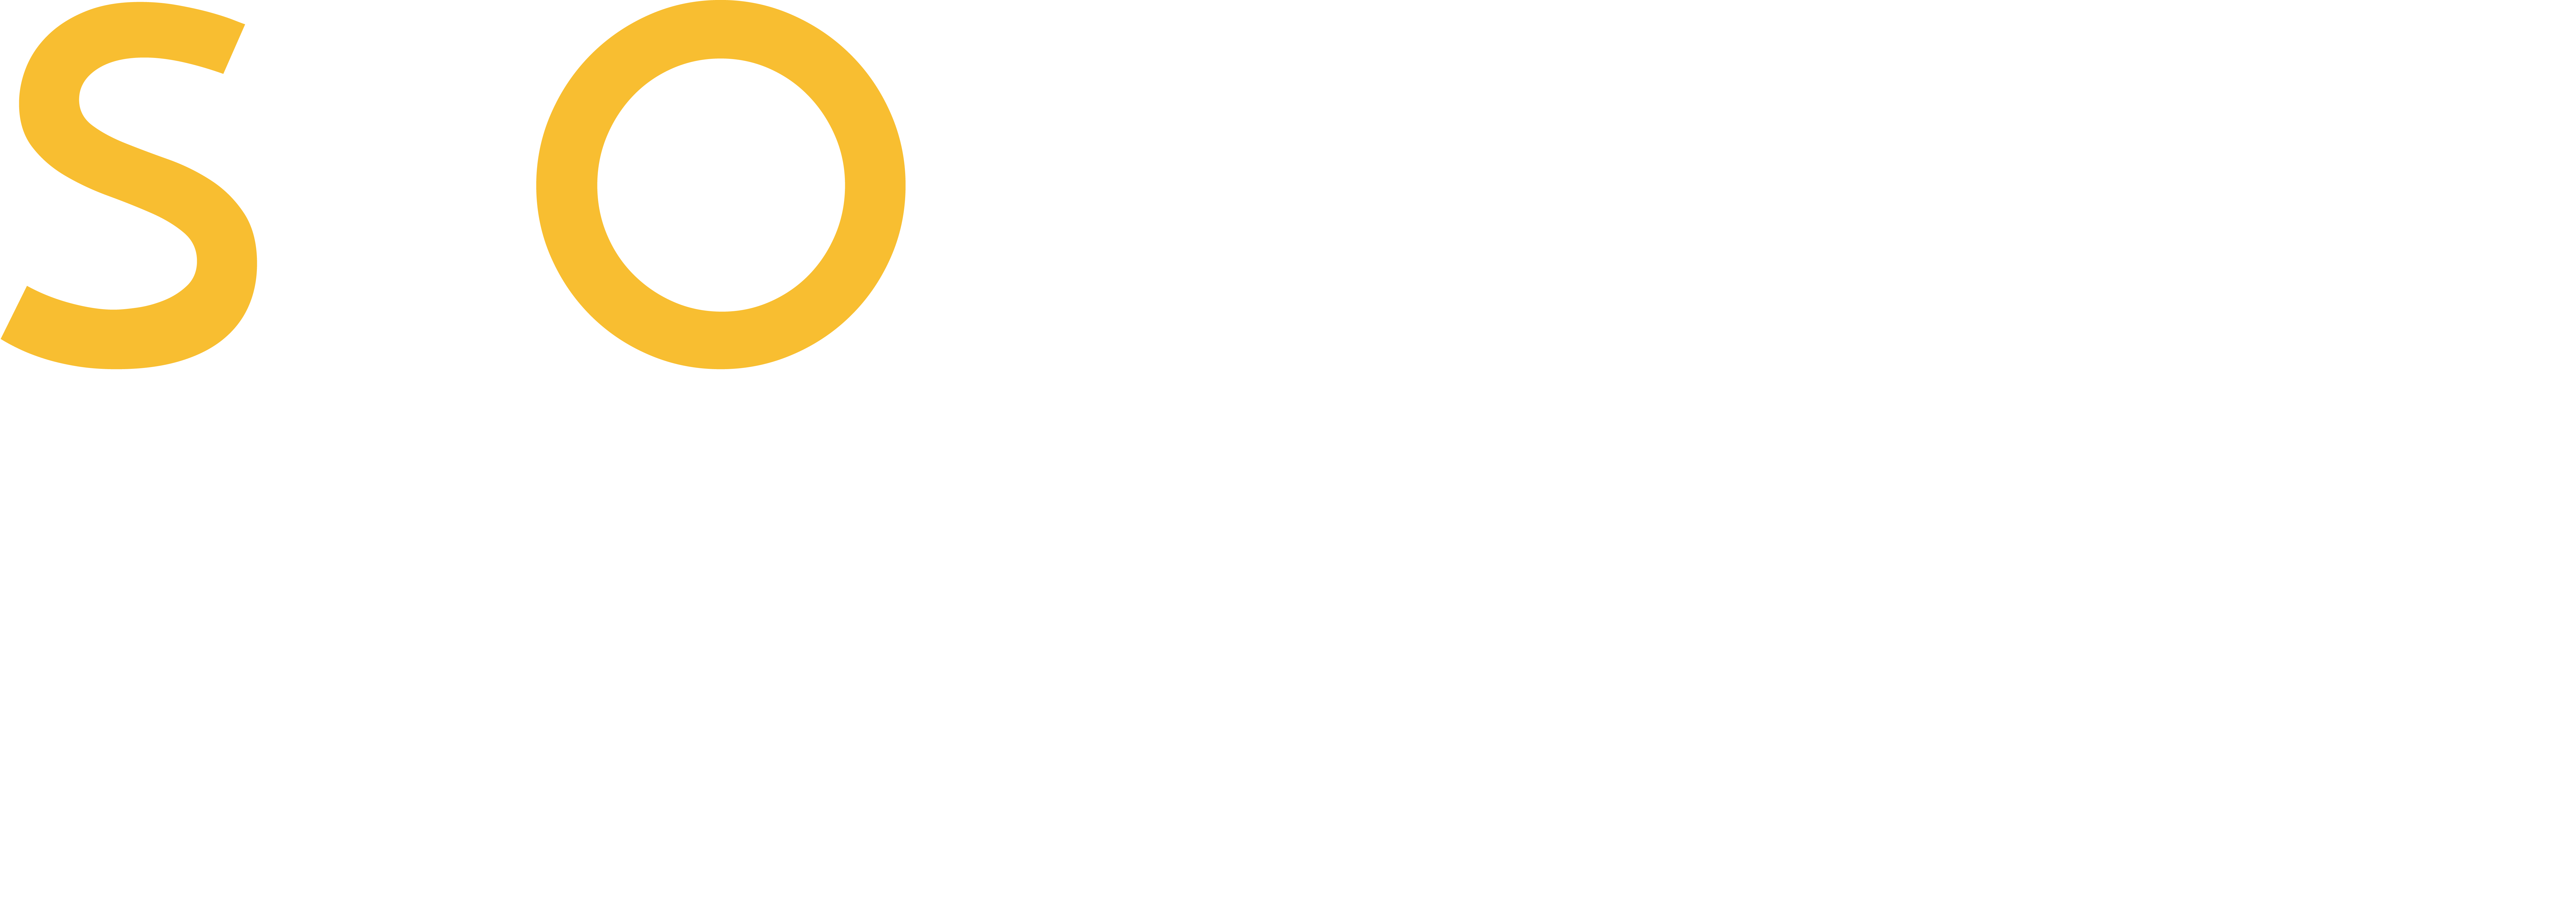 So You Homes logo in white upper case letters with yellow word 'So'